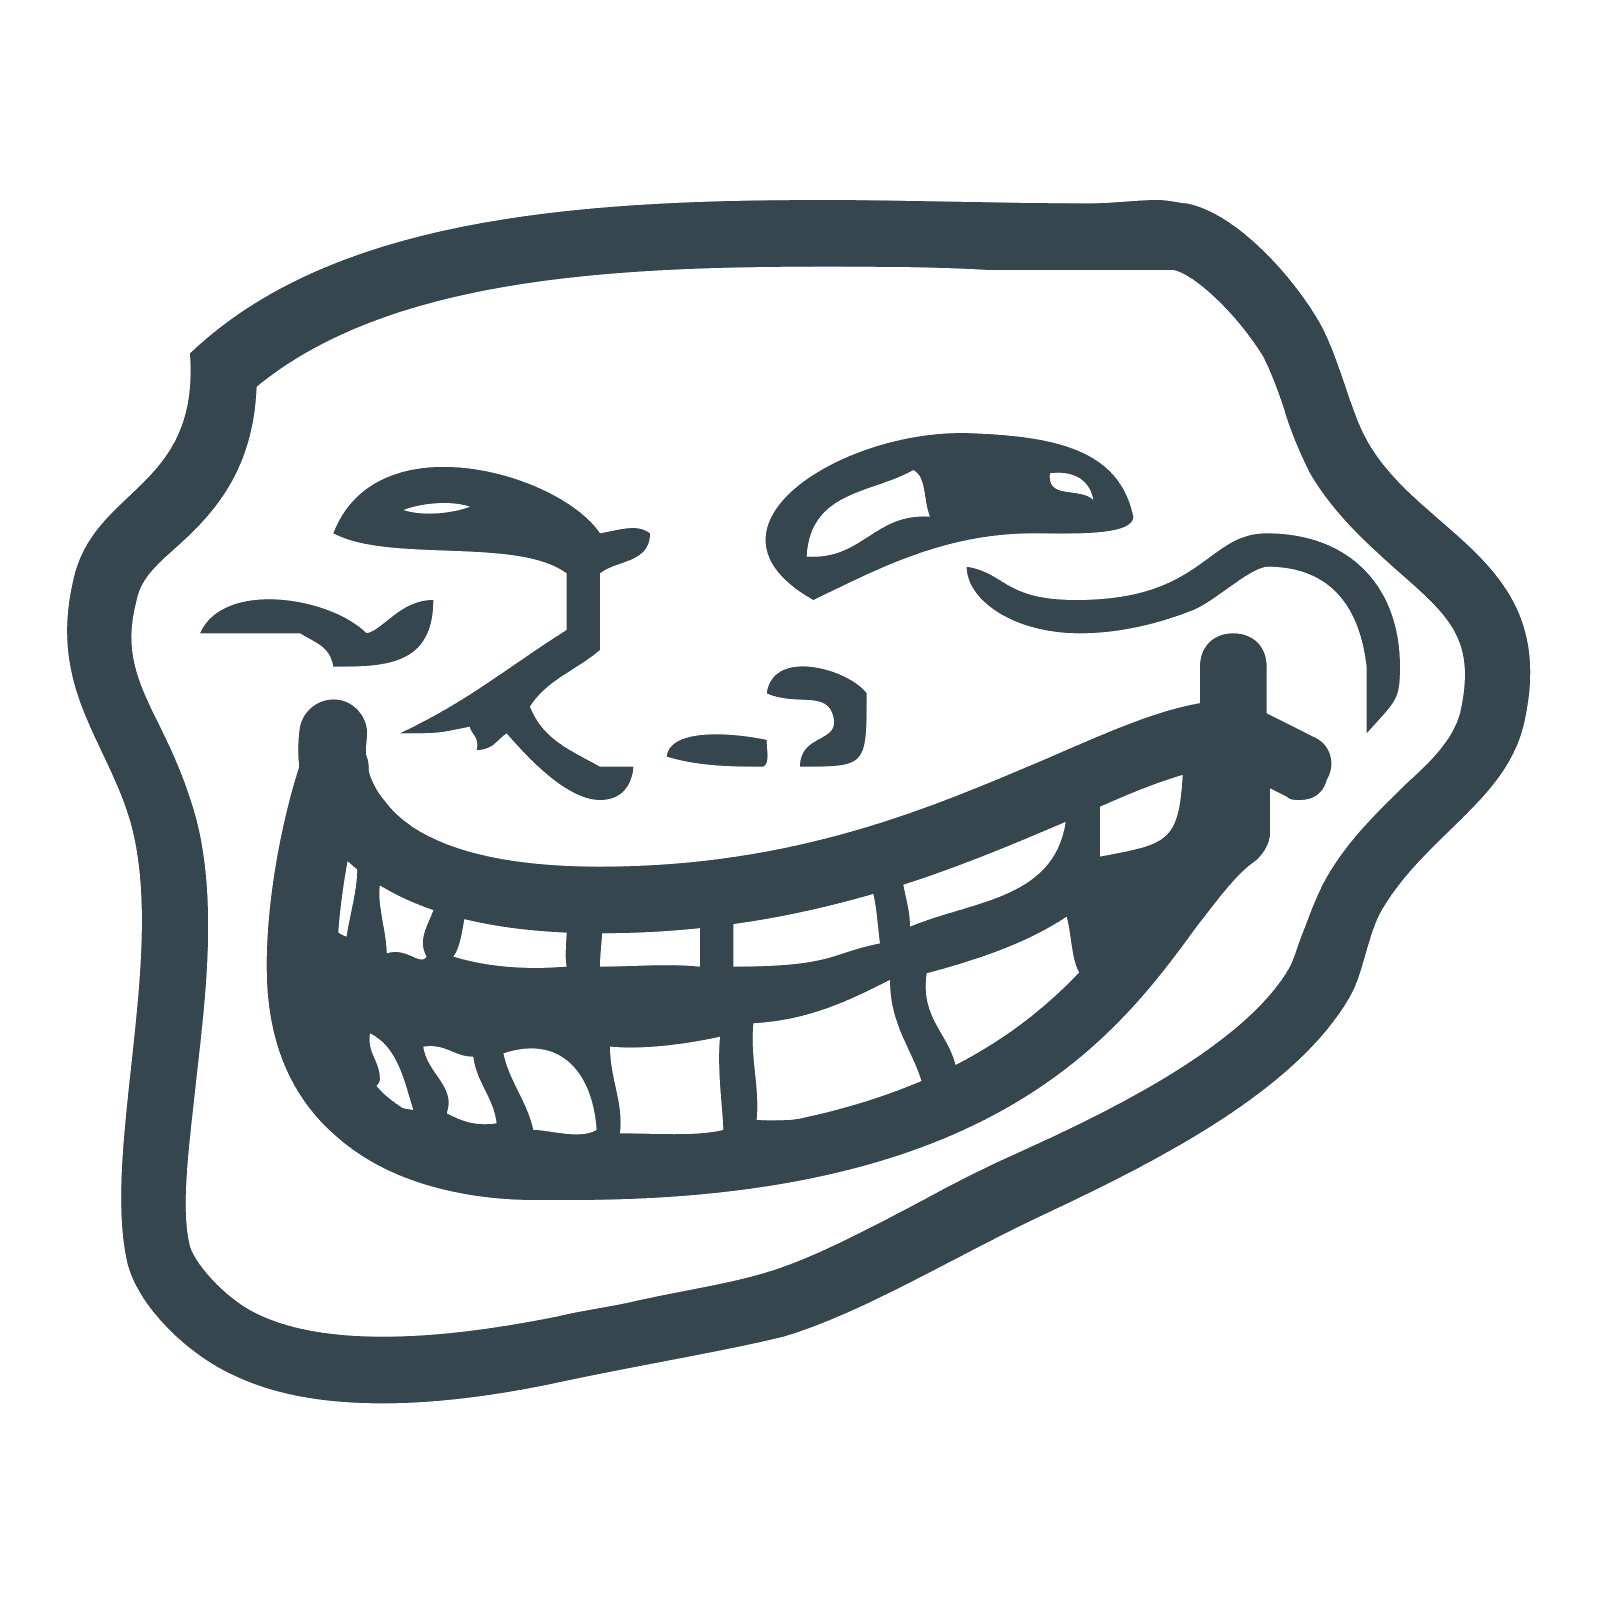 Troll face meme png. Trollface icon free download